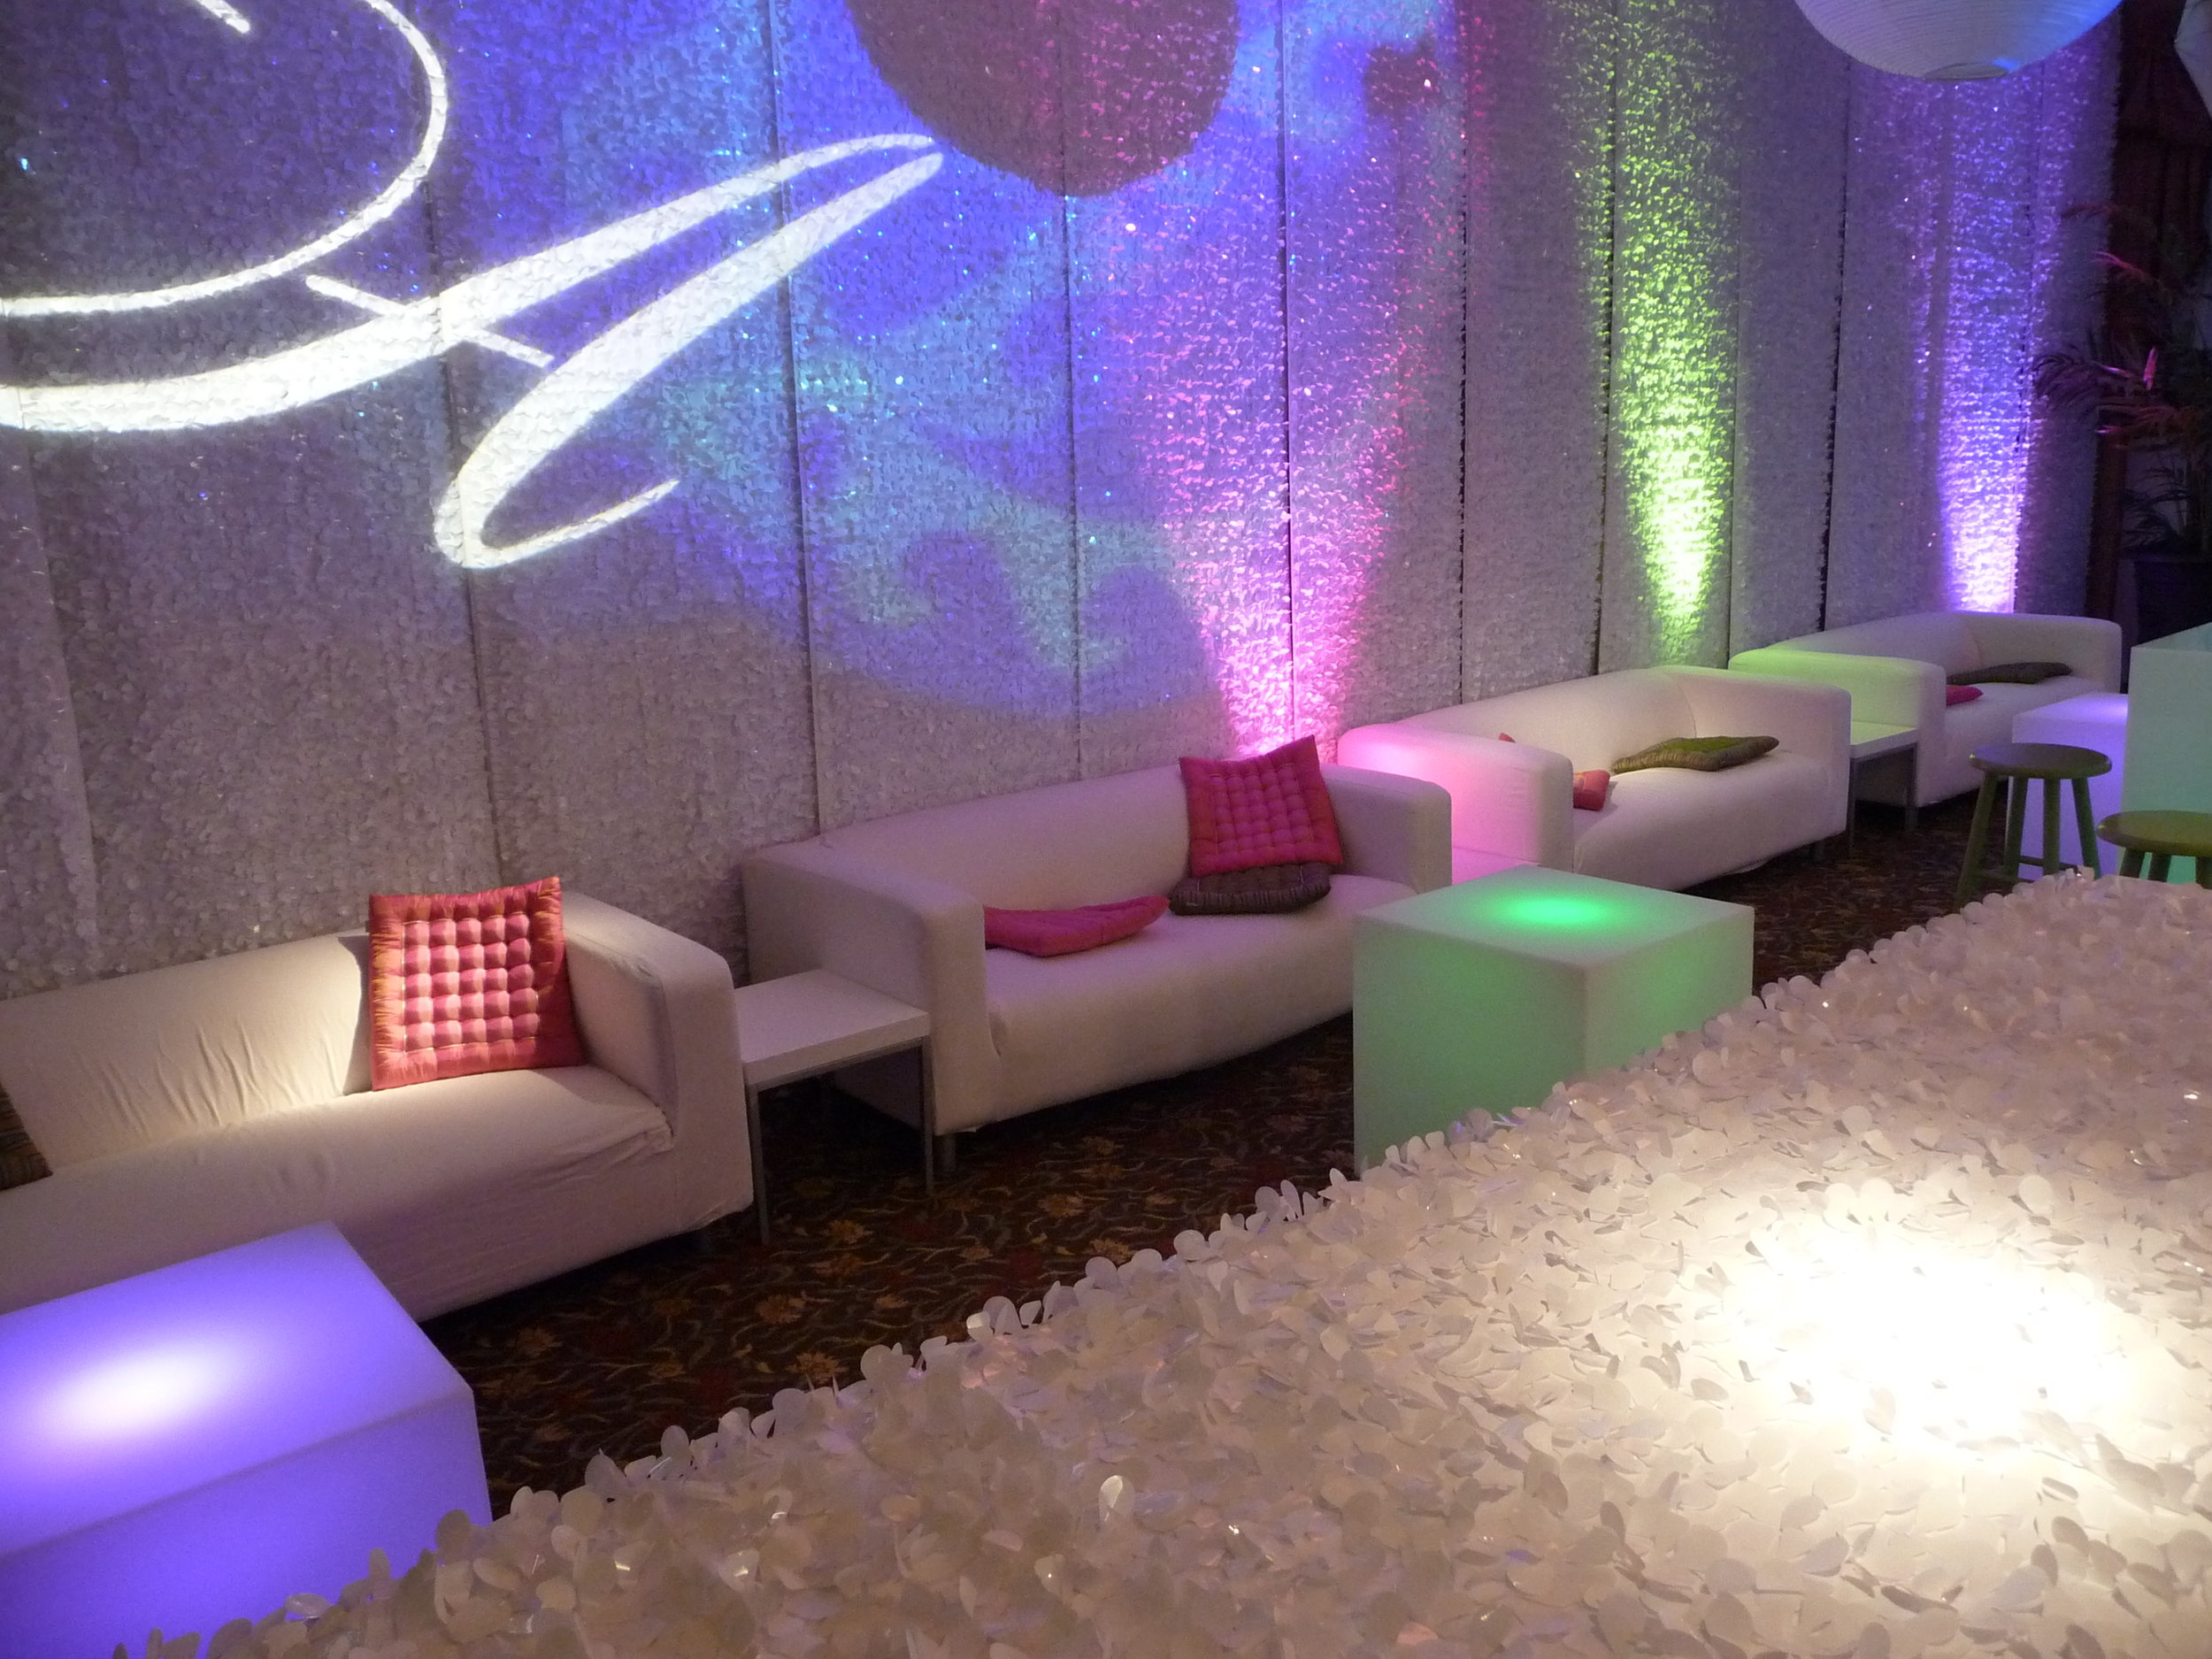 NJ+Bat+mitzvah+decorations+party+decor+NY+theme+parties+lounge+decor+design+lighting+PA+eggsotic+events.jpg